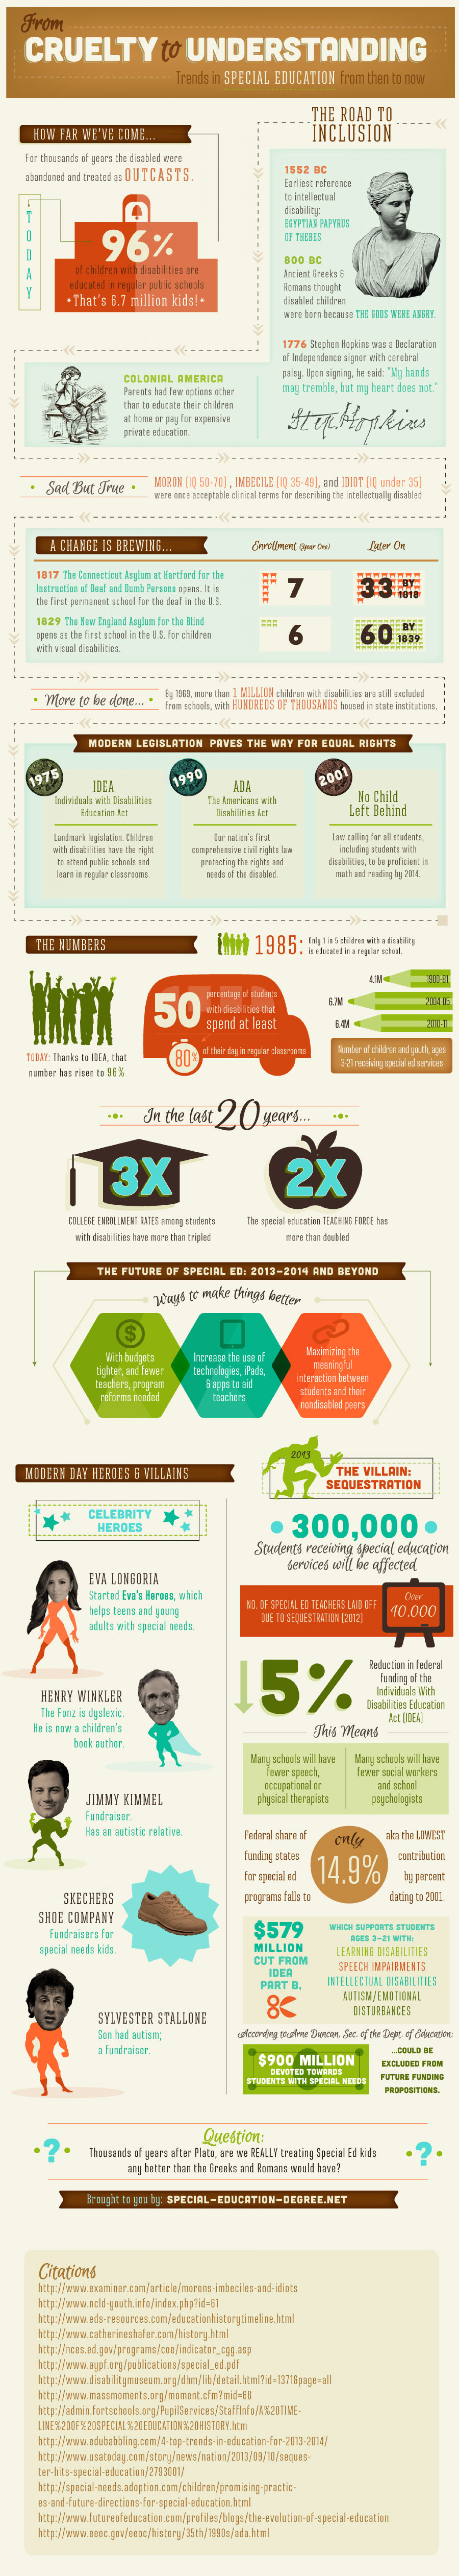 From Cruelty to Understanding: Trends in Special Education From Then To Now Infographic